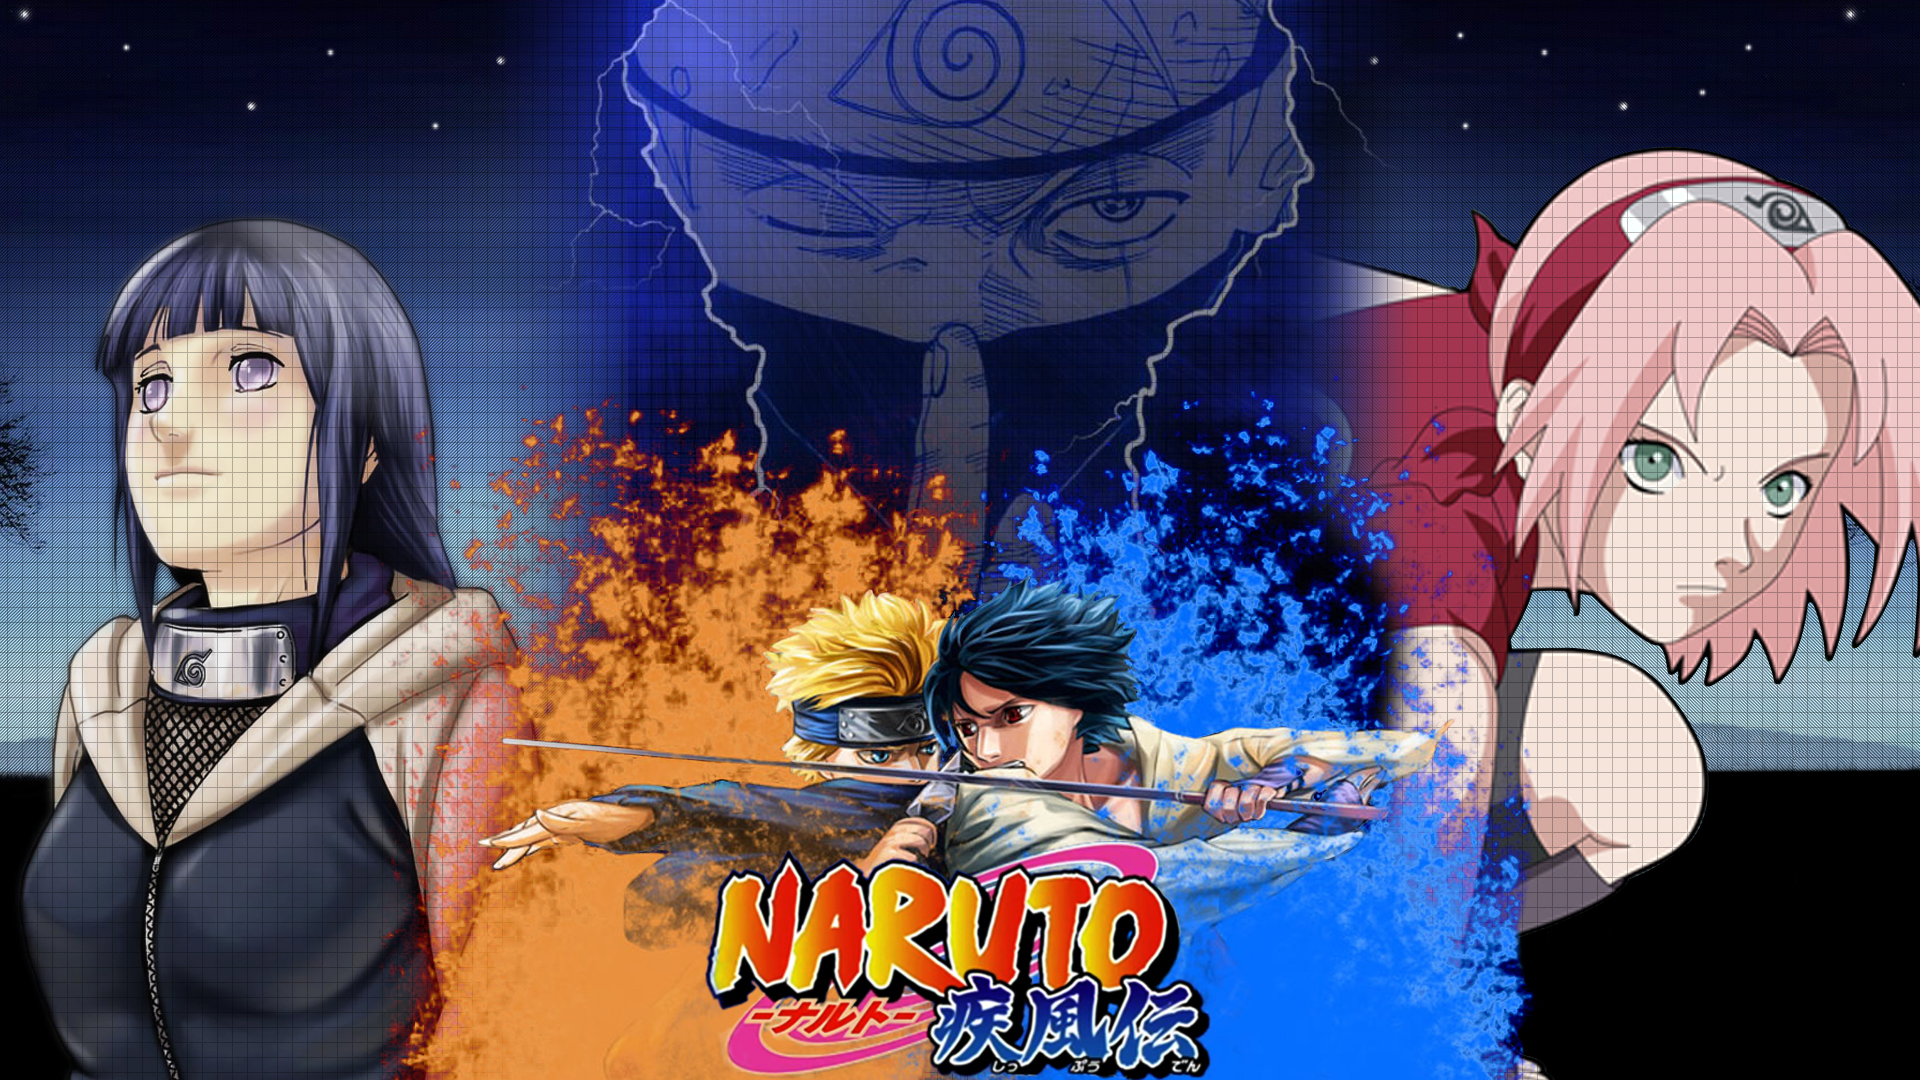 Naruto Shippuden Wallpaper 8